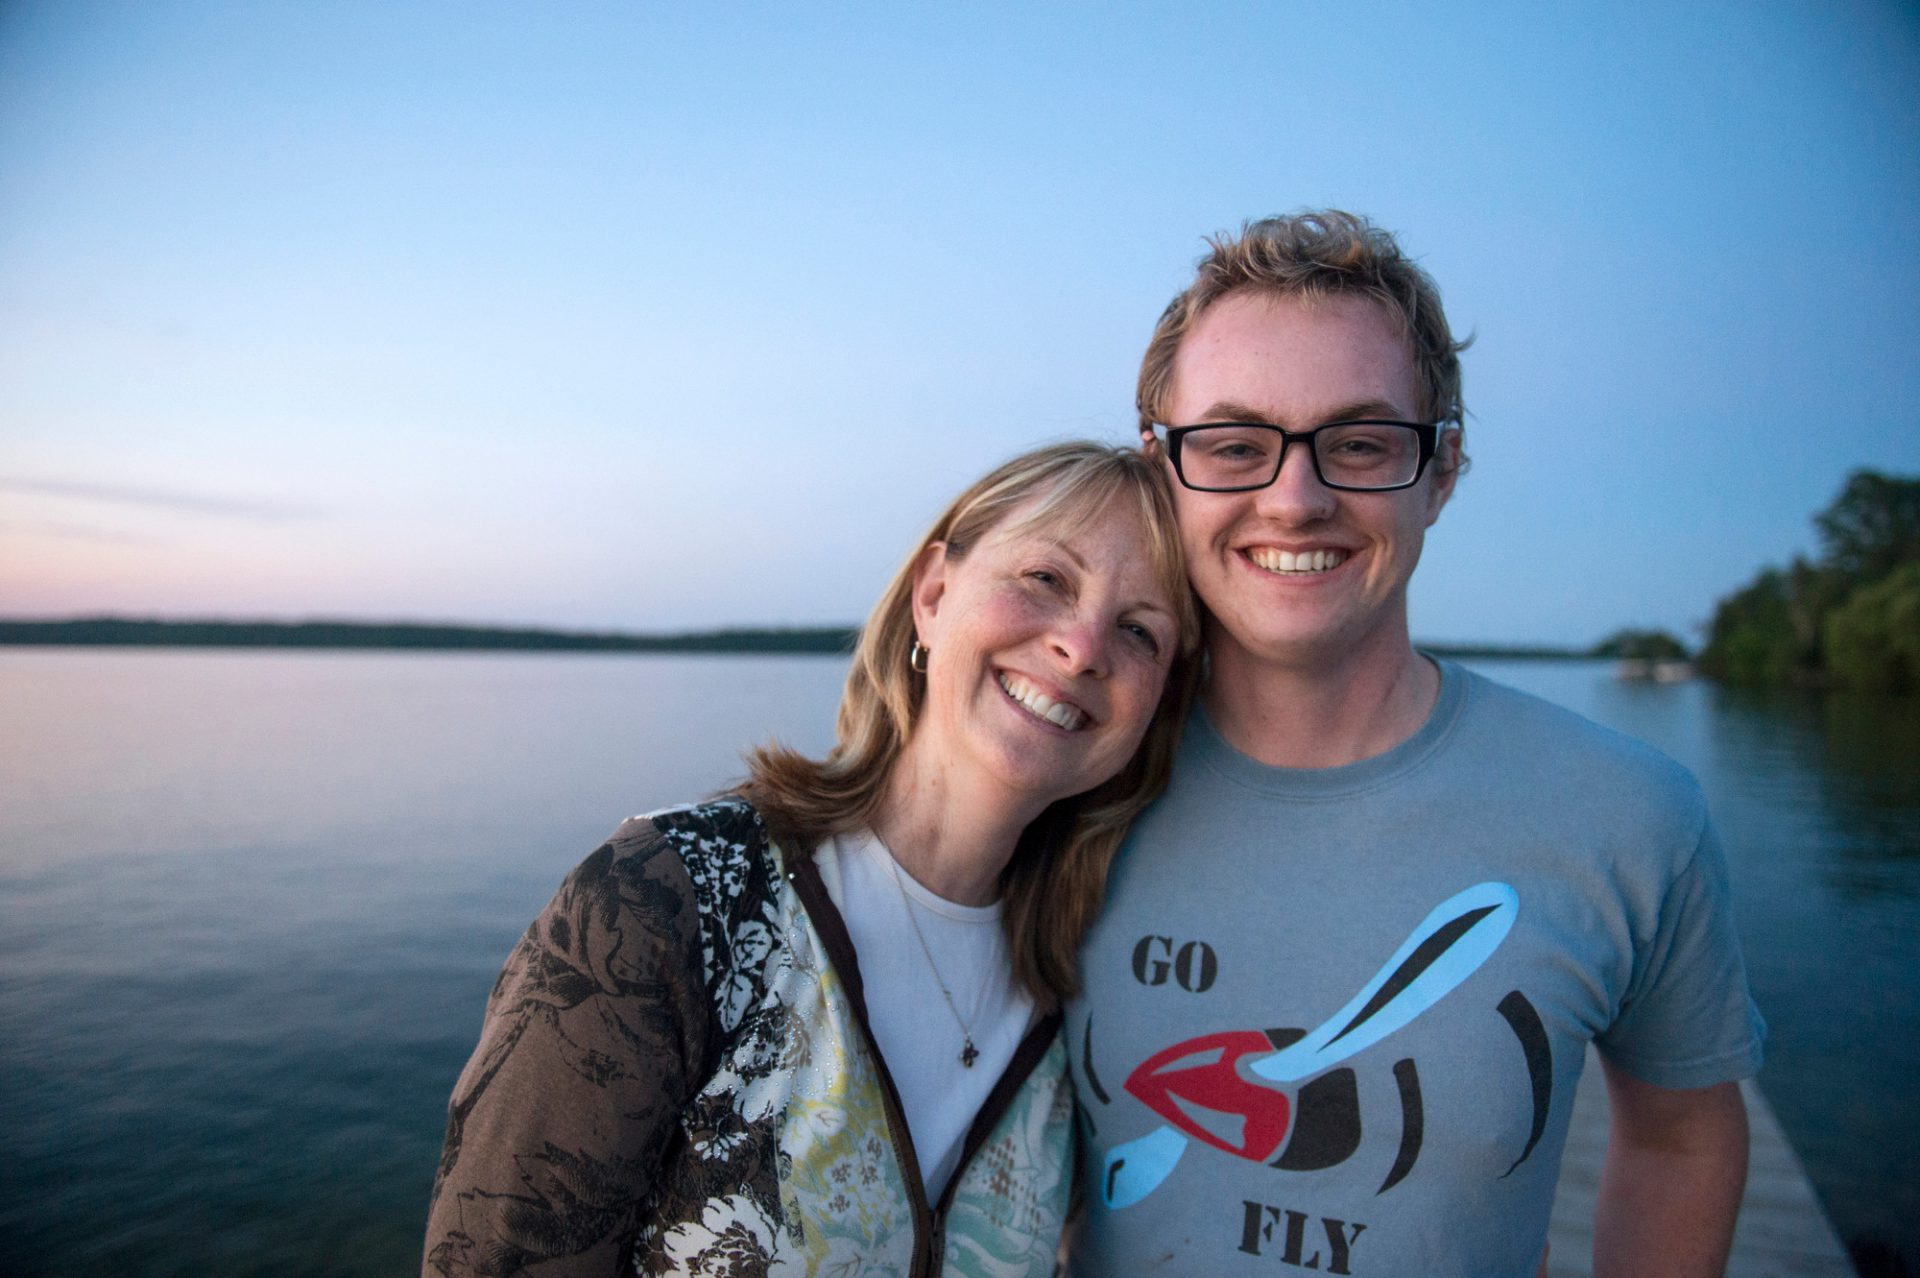 Photo: A woman and her son pose for a picture at Leech Lake, Minnesota.